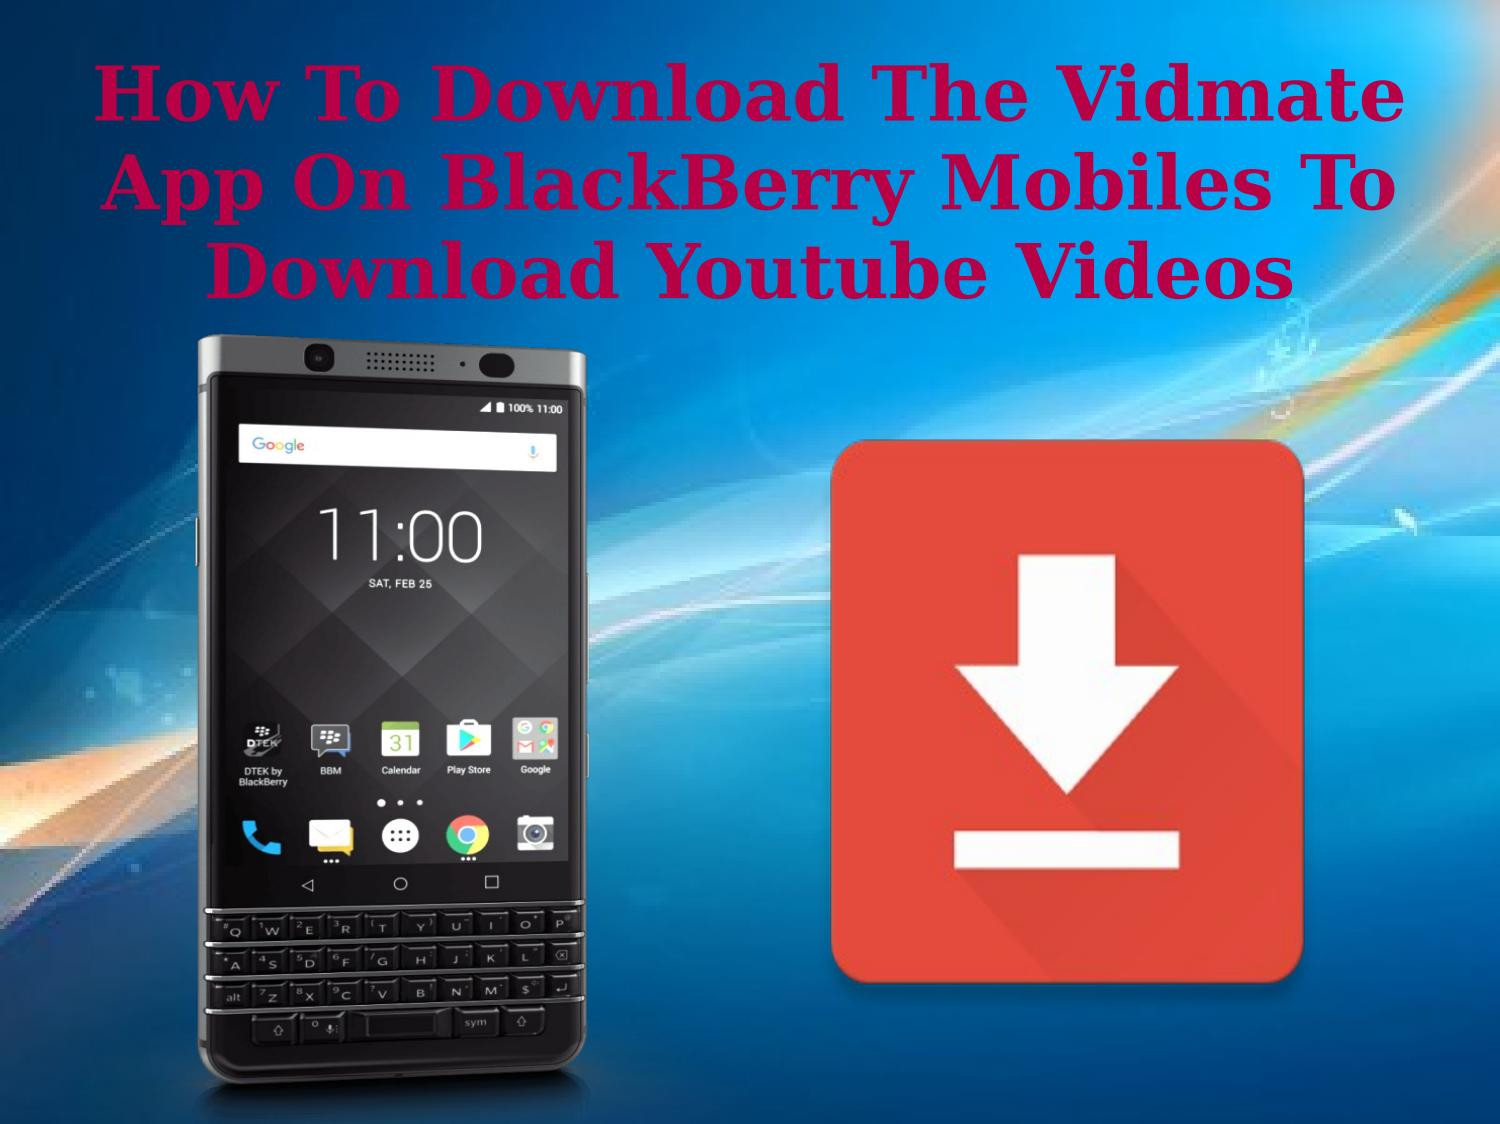 How To Download The Vidmate App On BlackBerry Mobiles To